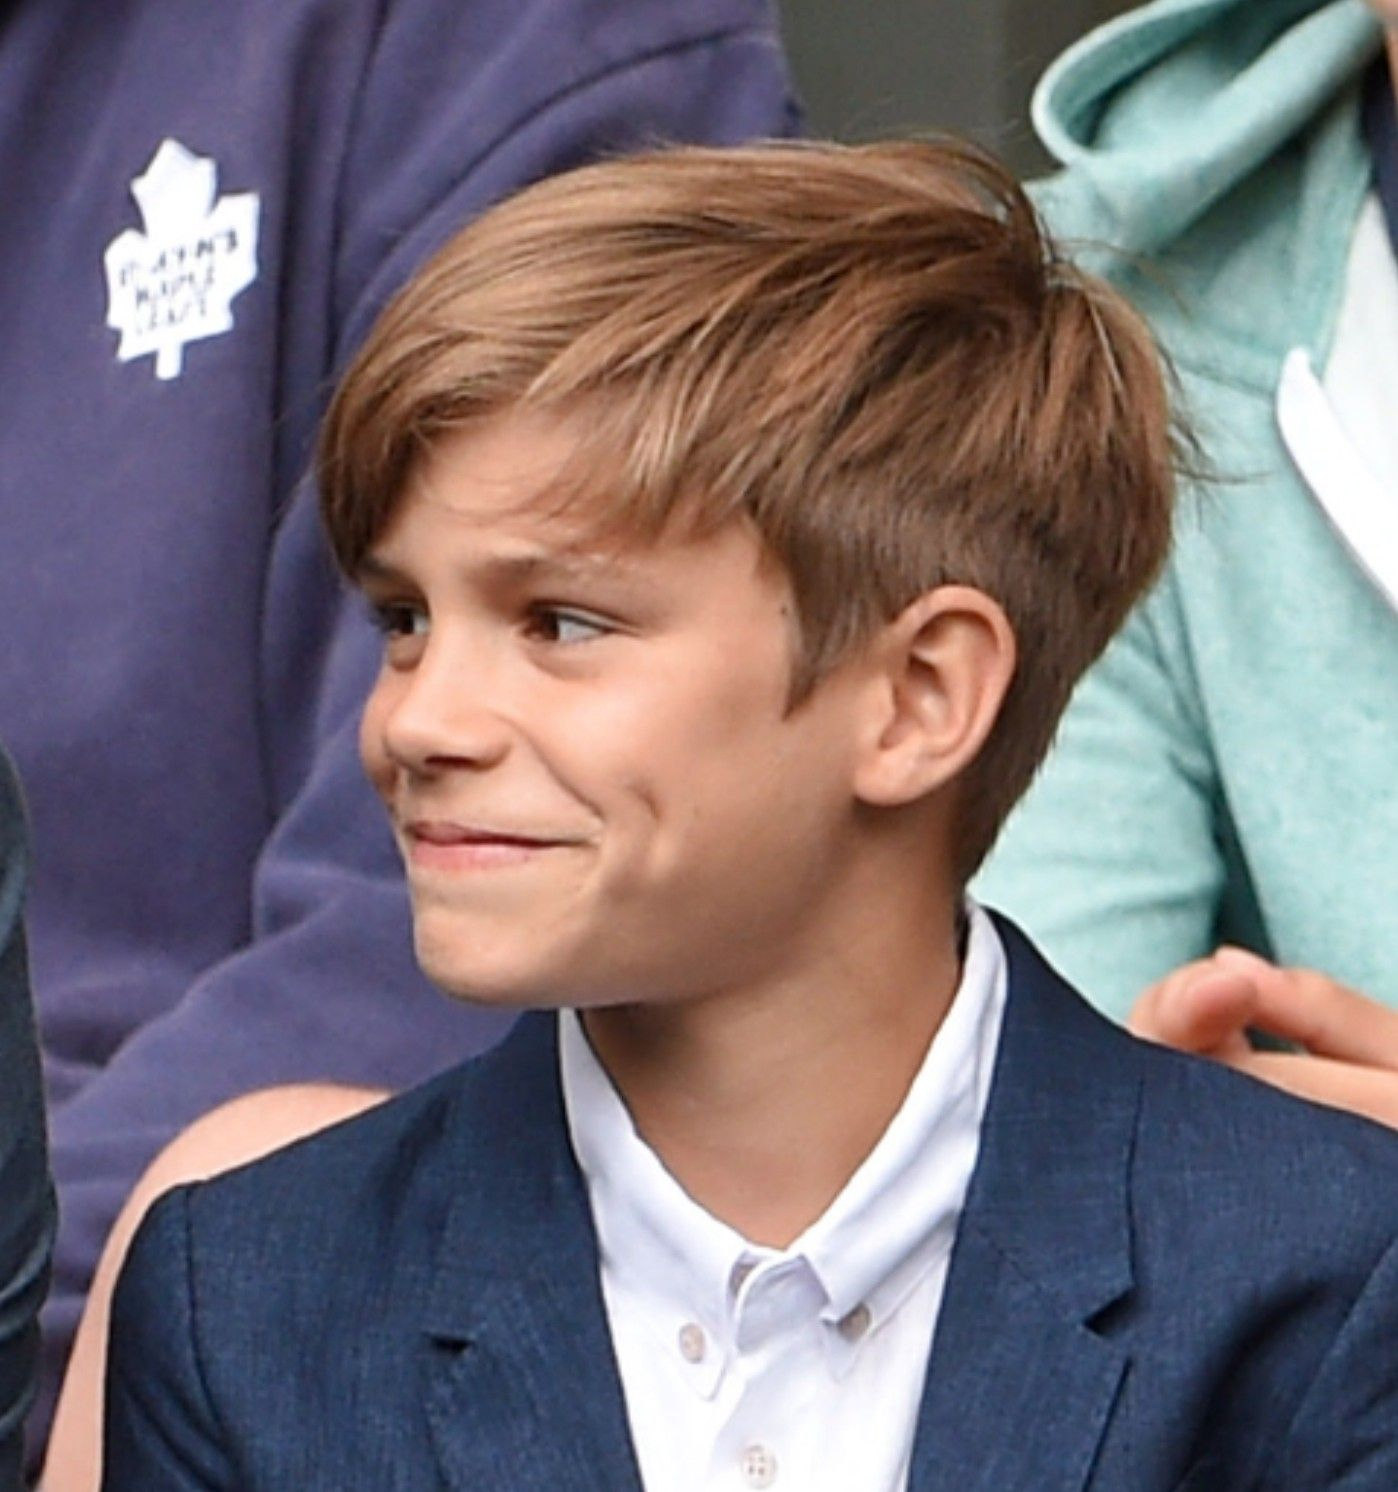 Photo of Romeo Beckham, #hair #boys # fashion #trendy #style, #HairCut